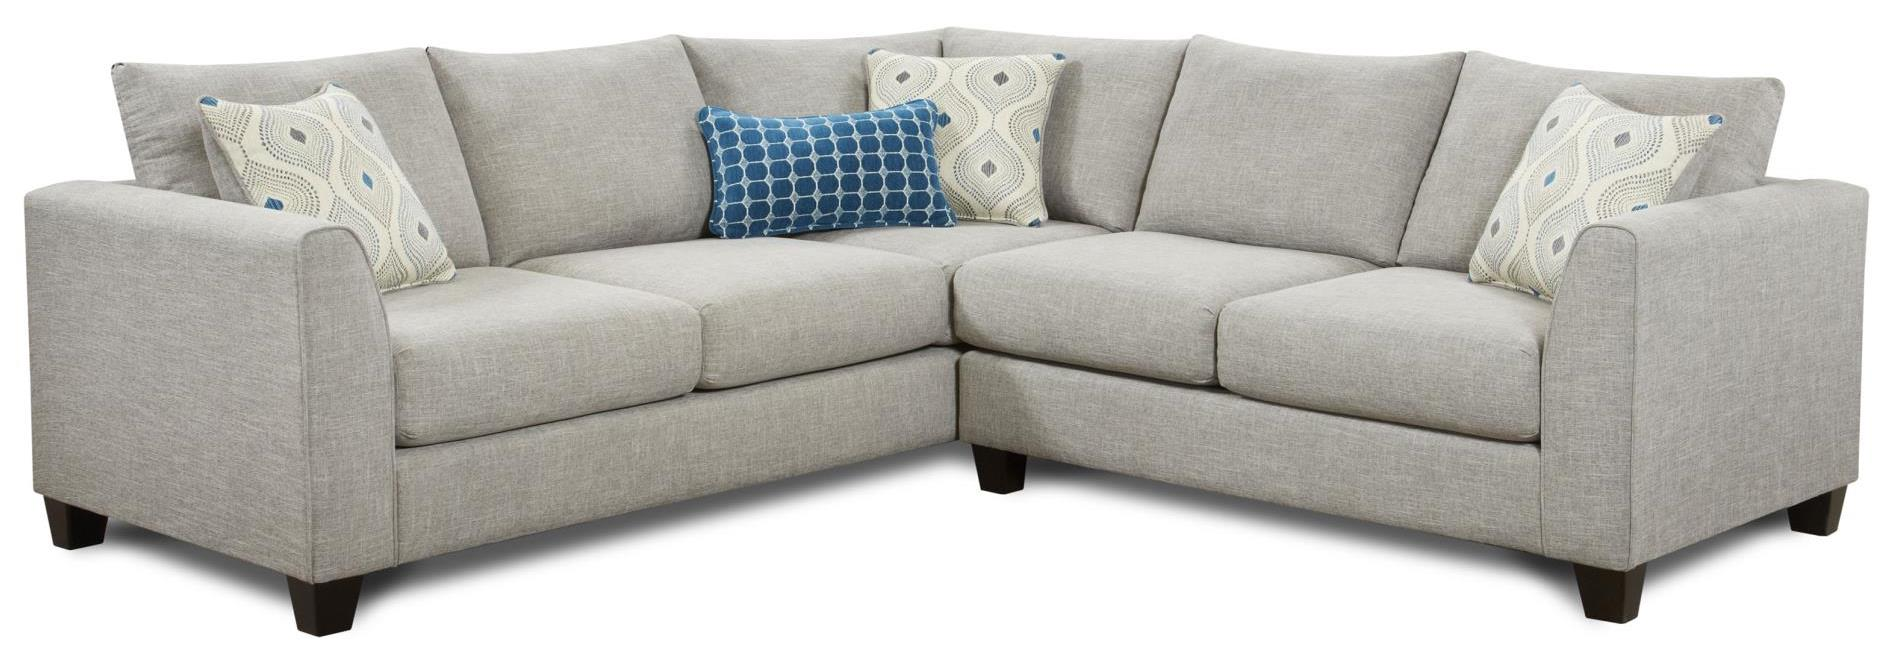 VFM Signature 2800 2-Piece Sectional - Item Number: 2807Paradigm Quartz+2806